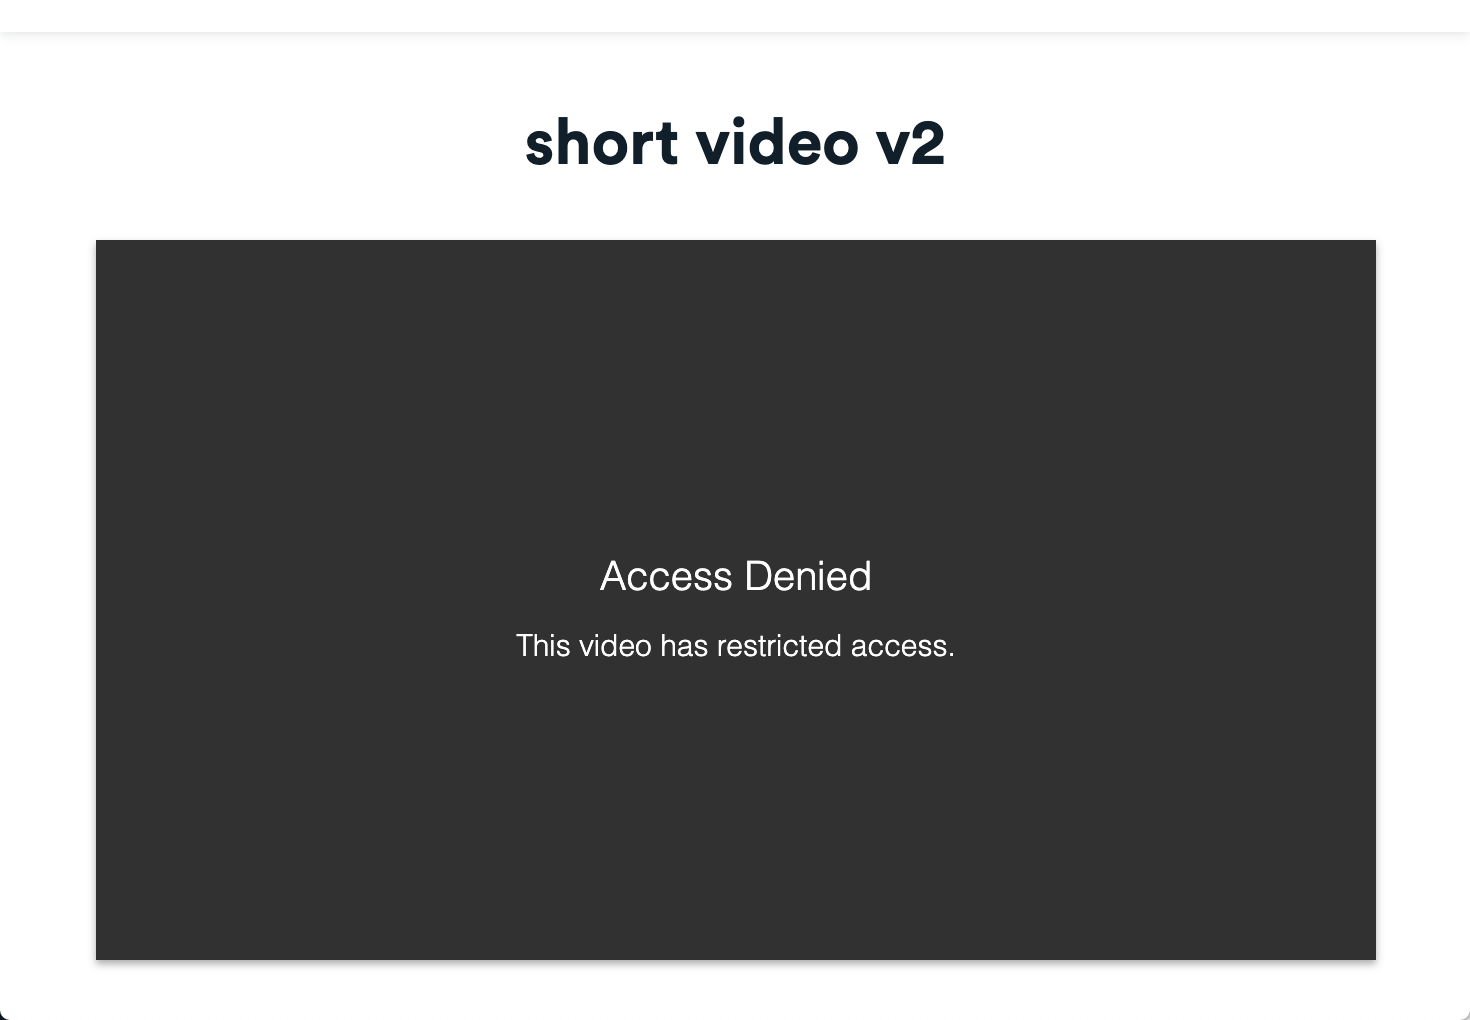 Error that appears on a video when the viewer is not connected to a permitted IP address